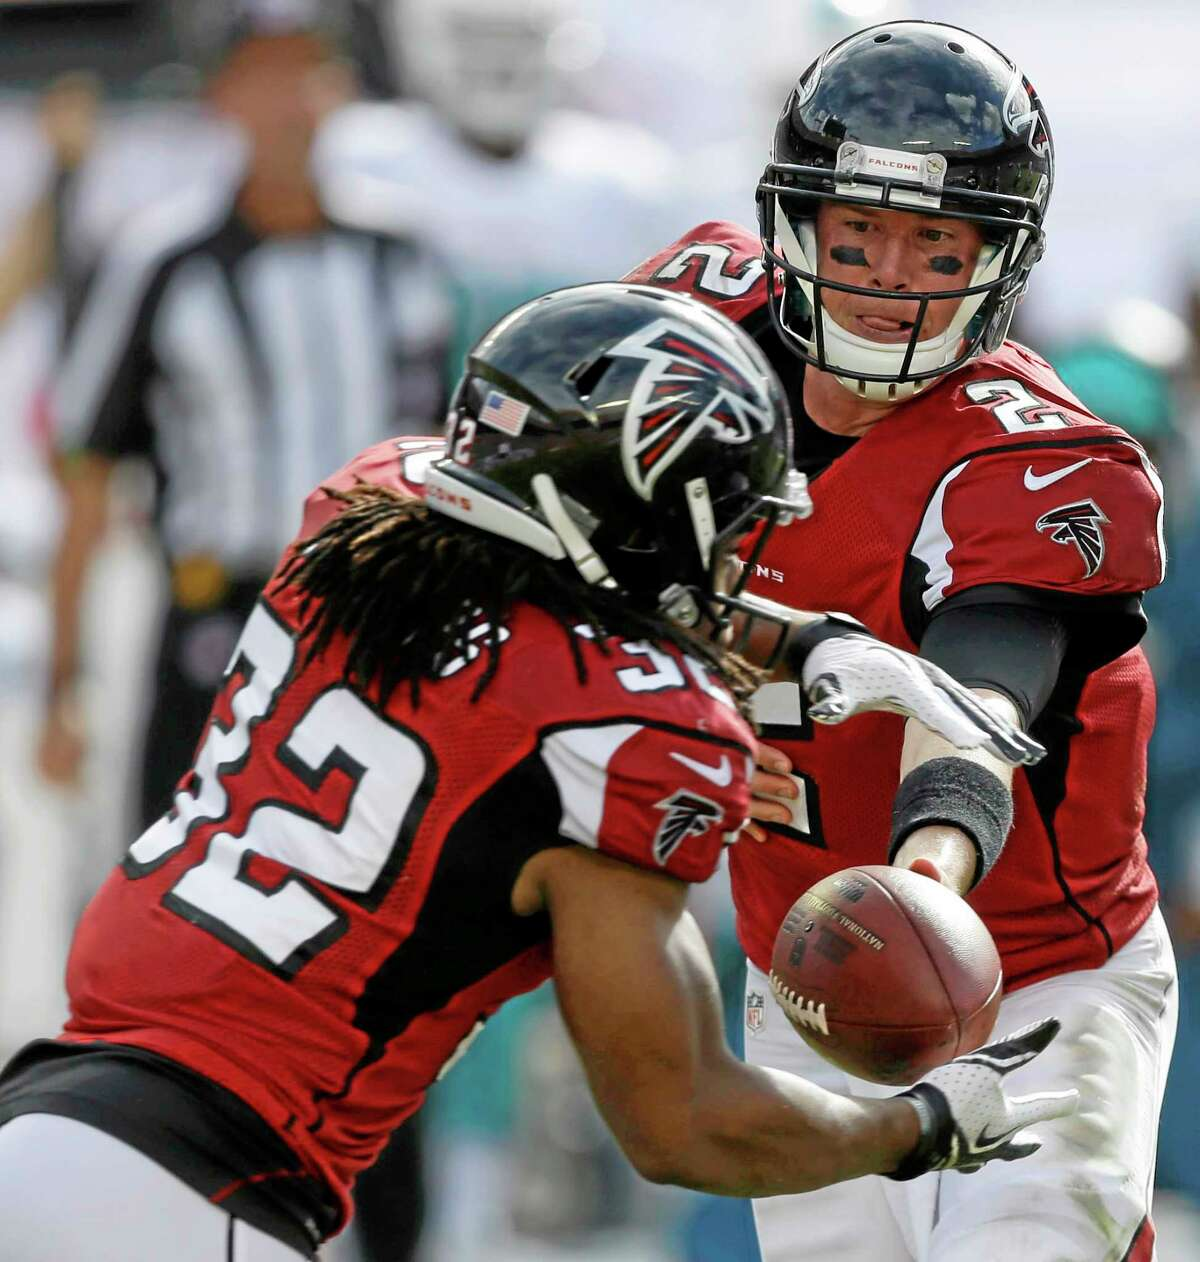 Atlanta Falcons quarterback Matt Ryan, right, hands the ball to running back Jacquizz Rodgers during the first half of Sunday's loss to the Miami Dolphins in Miami Gardens, Fla.